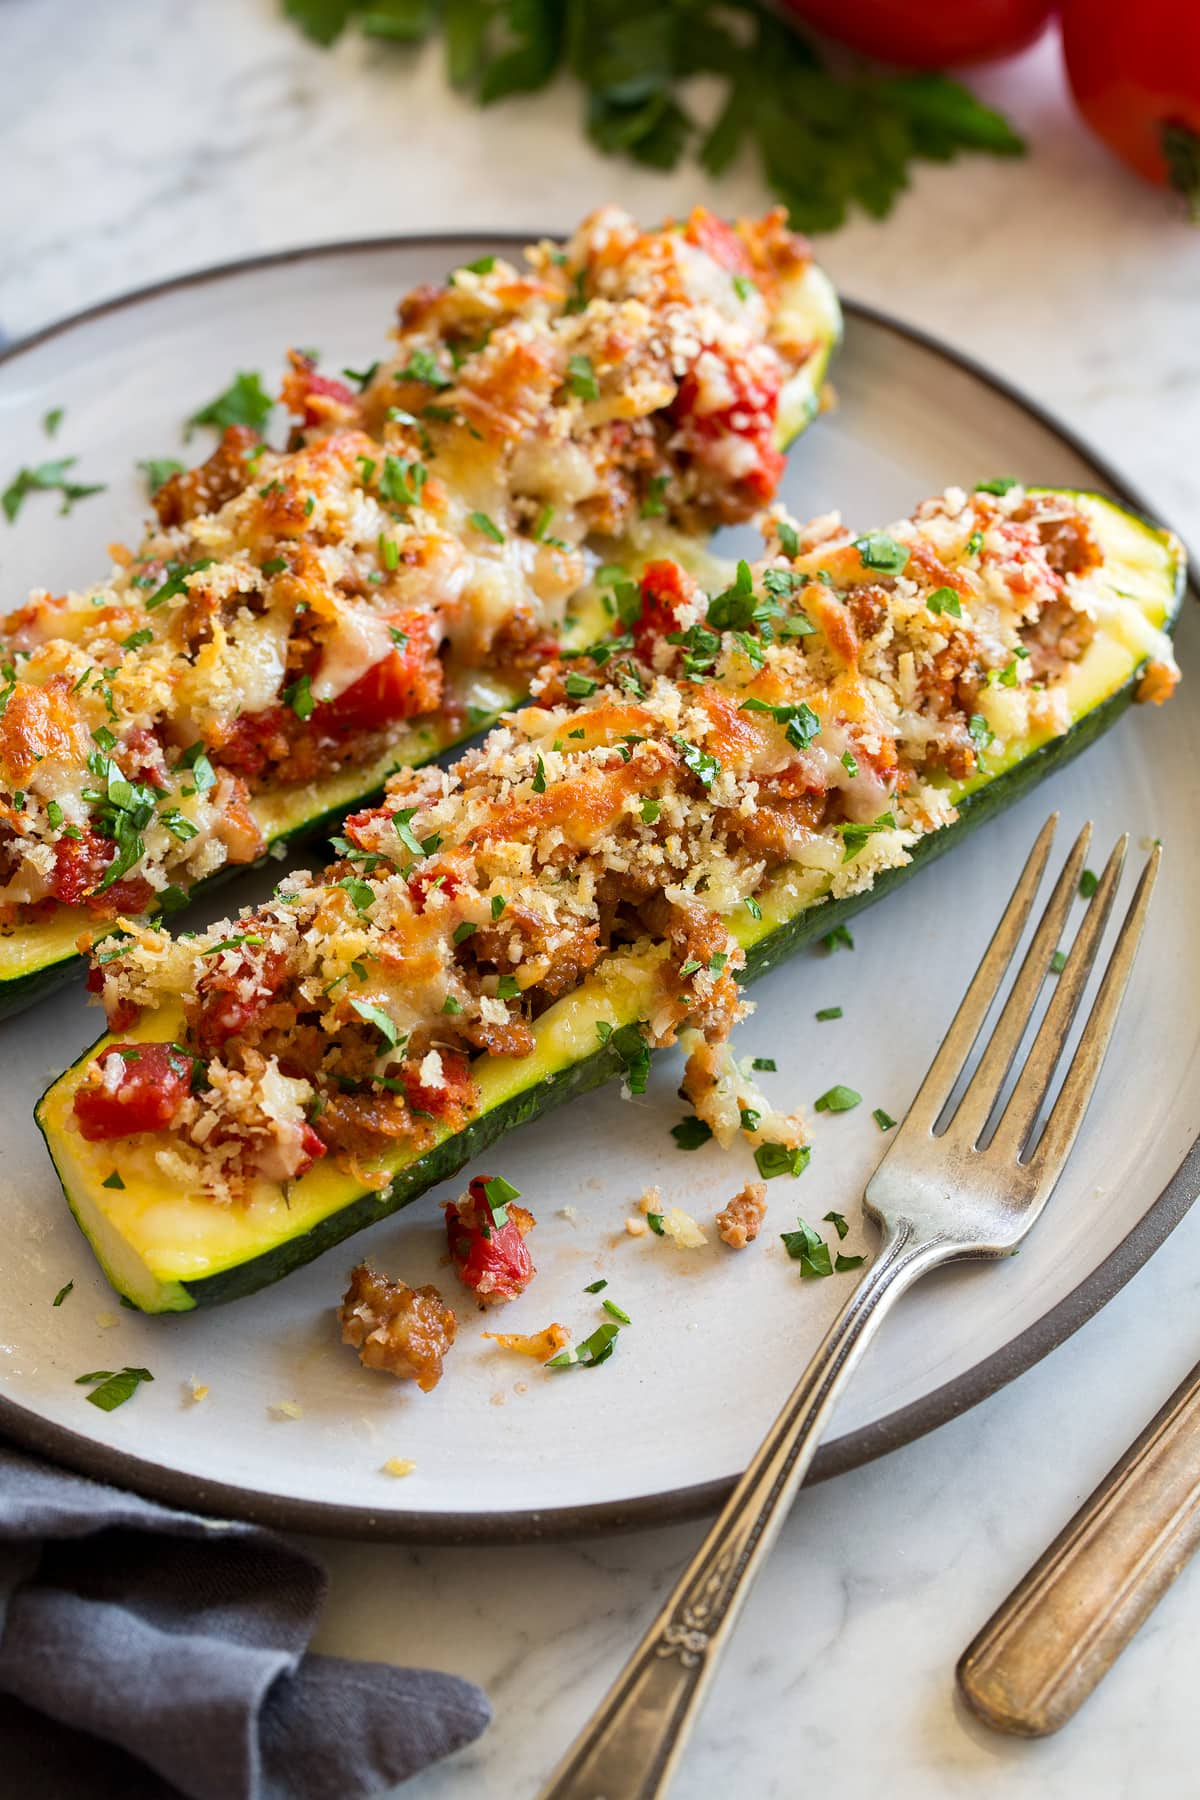 Two stuffed zucchini boats on a white dinner plate with a fork to the side.